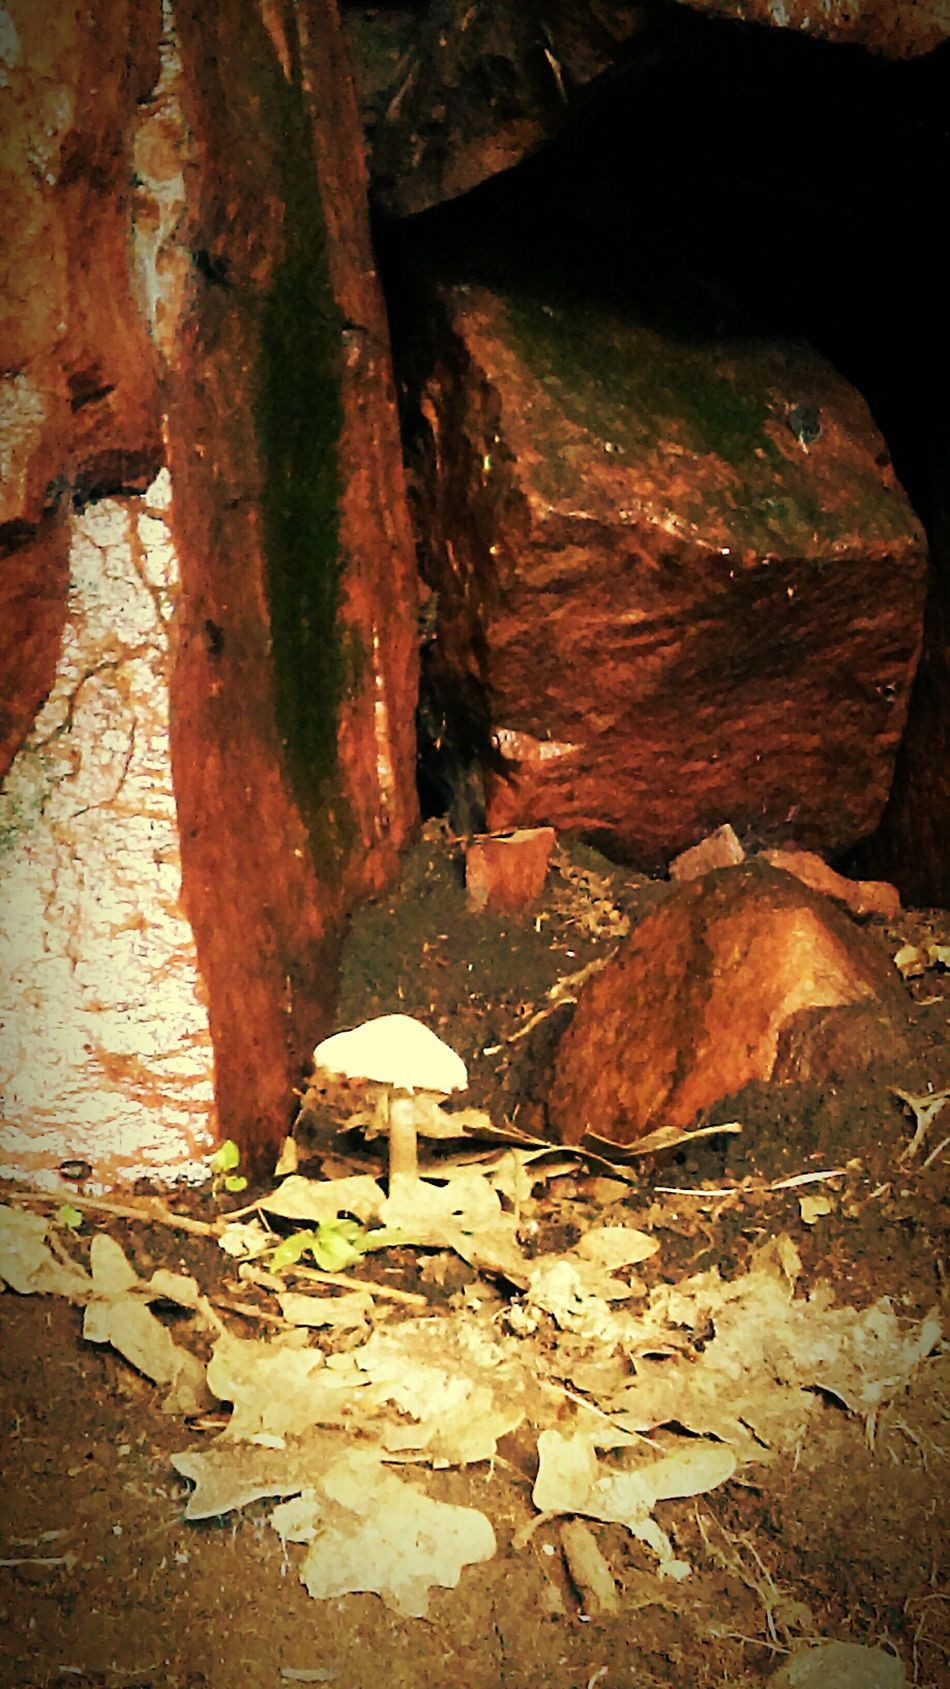 Forgottenparadise Mushroom Rockwall Outdoor Photography Nature Photography Nature A Walk In The Park Unexpected Nature Mushroom_pictures Alone Solitude Magic